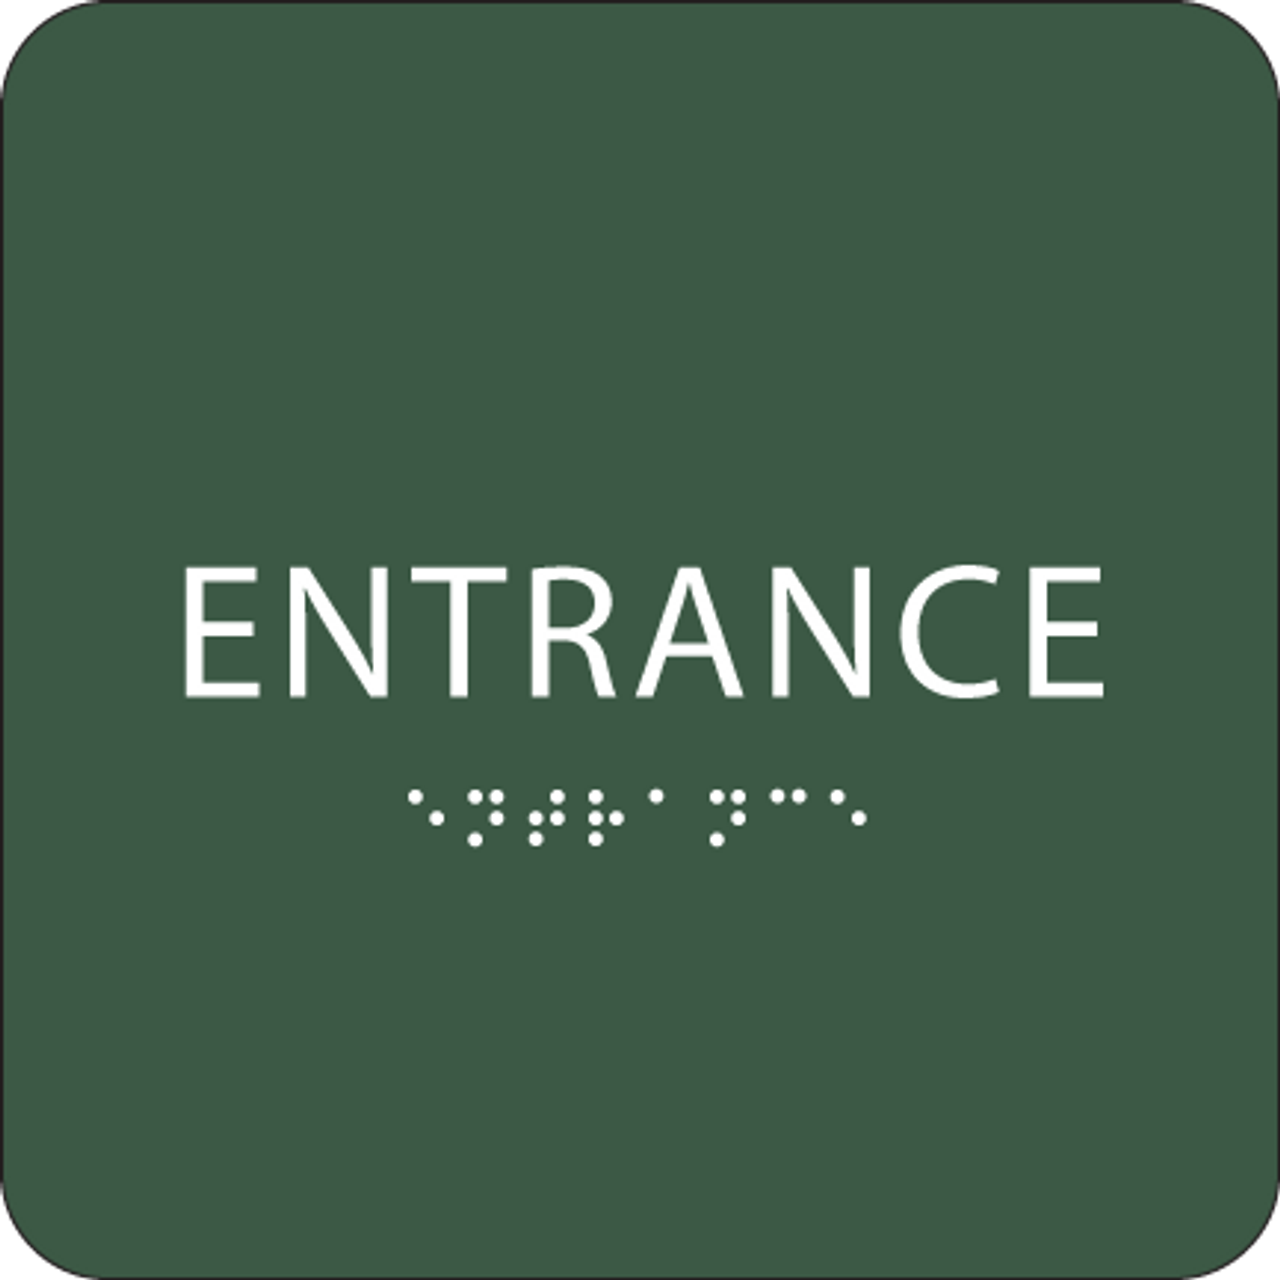 Green Braille Entrance Sign